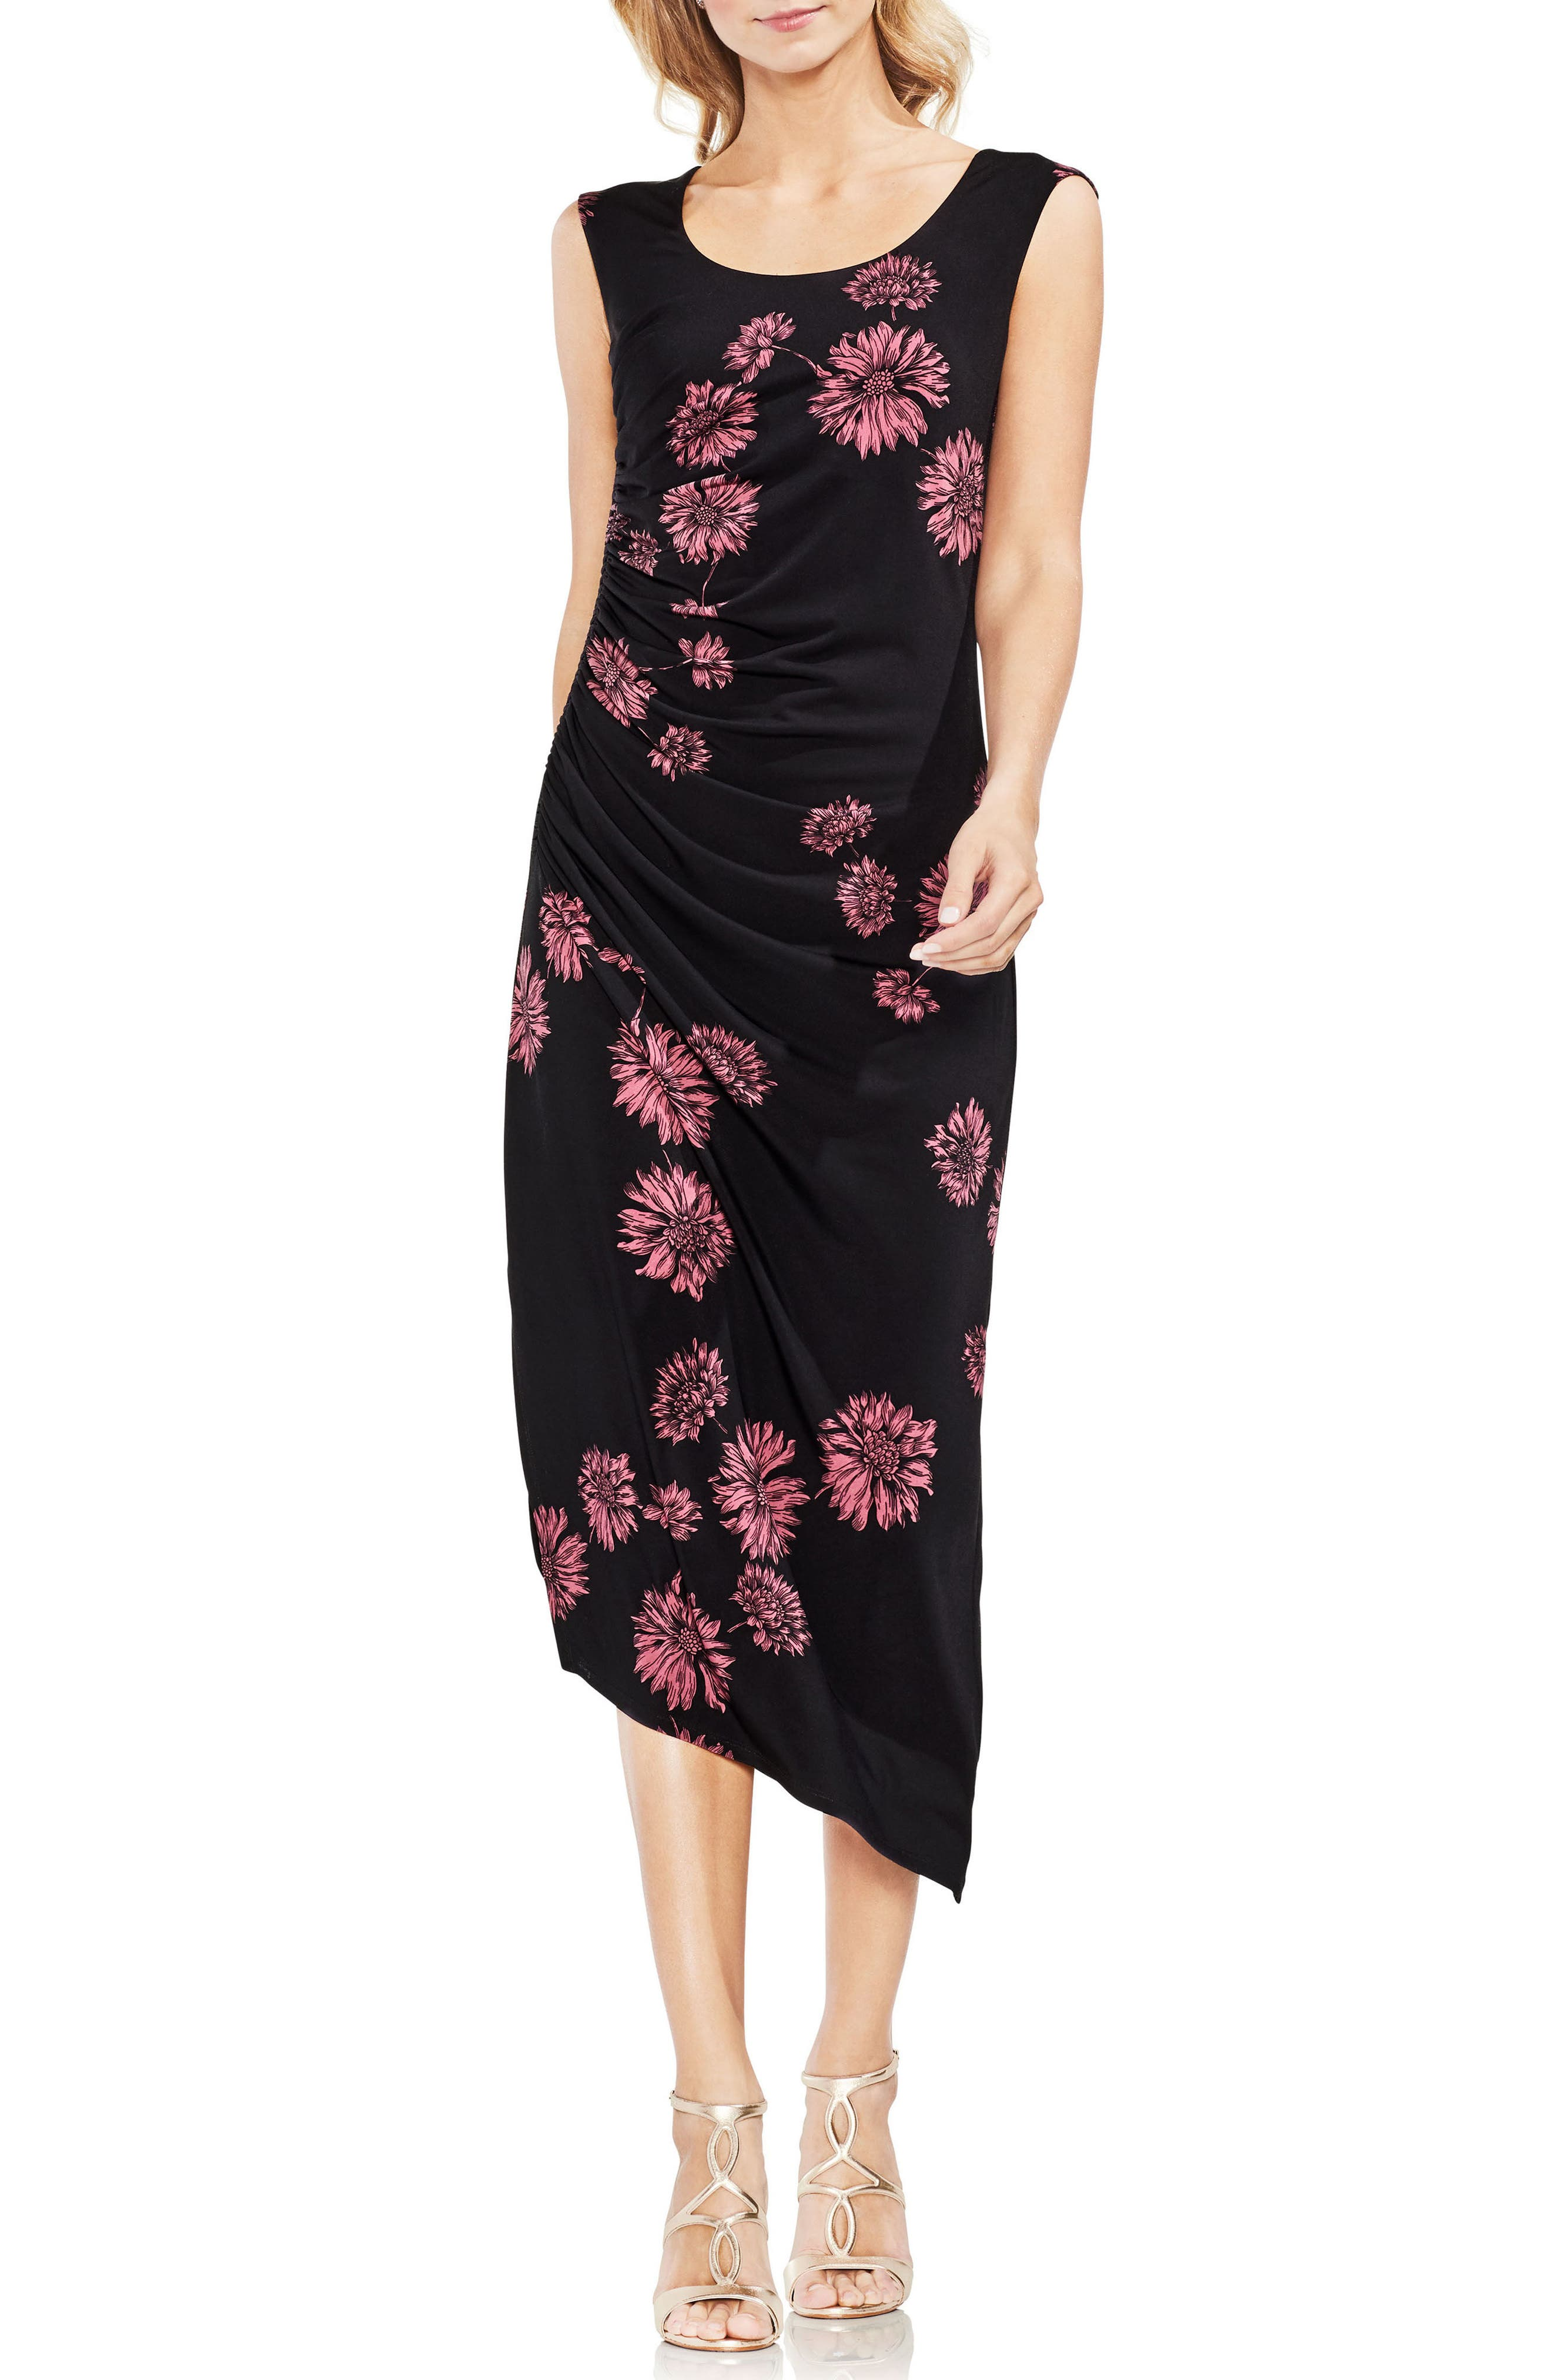 VINCE CAMUTO Chateau Floral Side Ruched Body-Con Dress, Main, color, 001